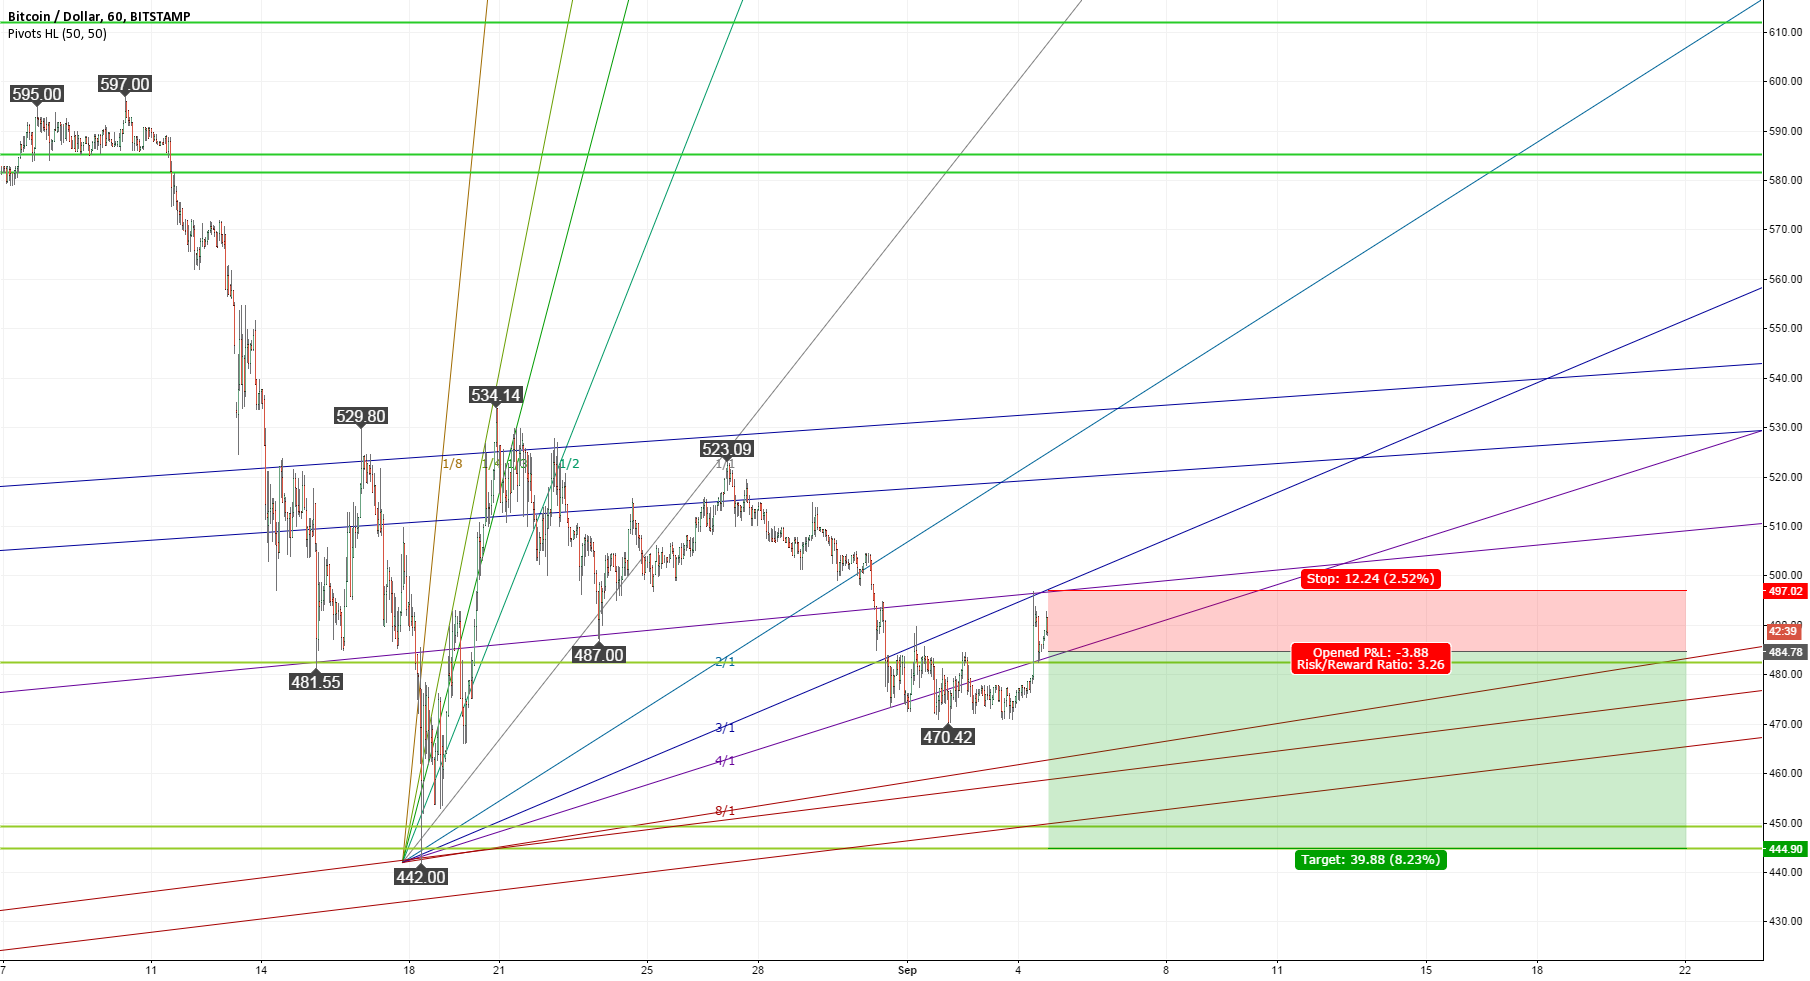 Short-term selling opportunity below 485 US Dollar